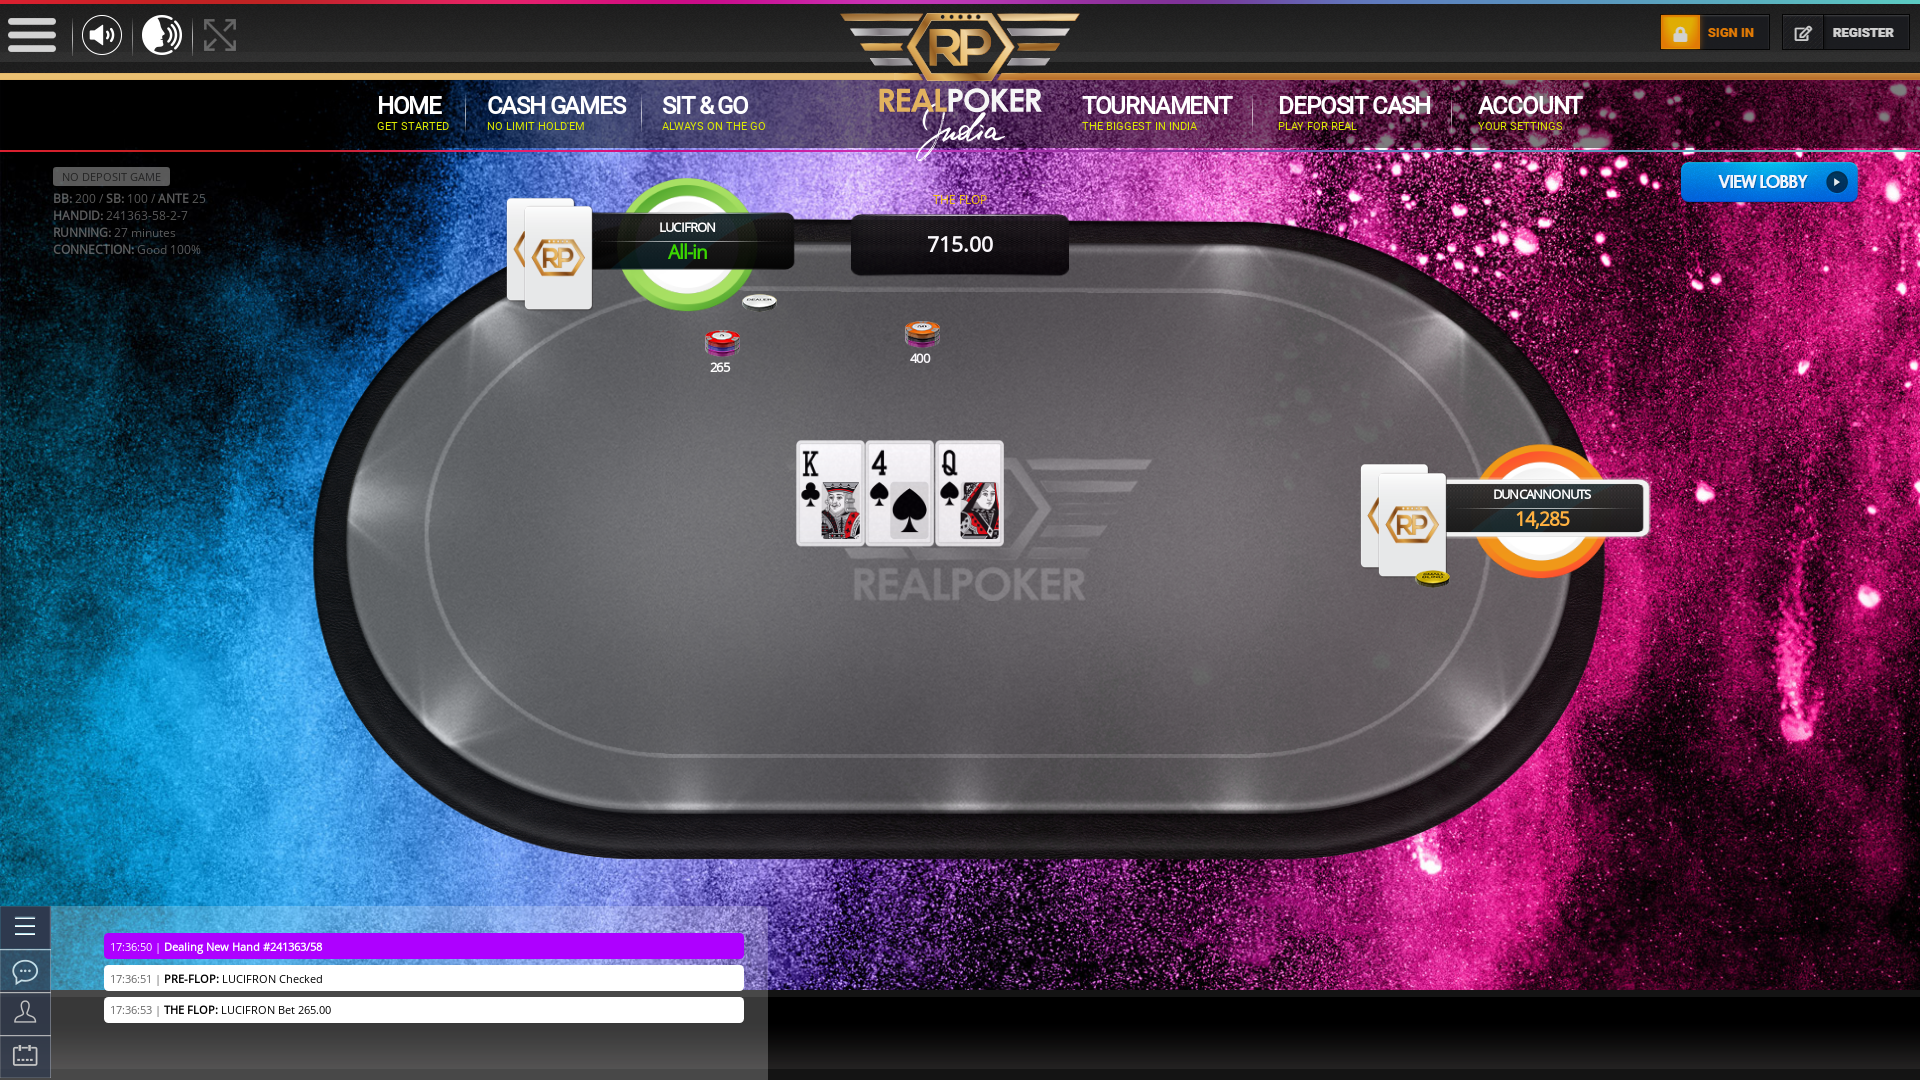 Indian 10 player poker in the 27th minute